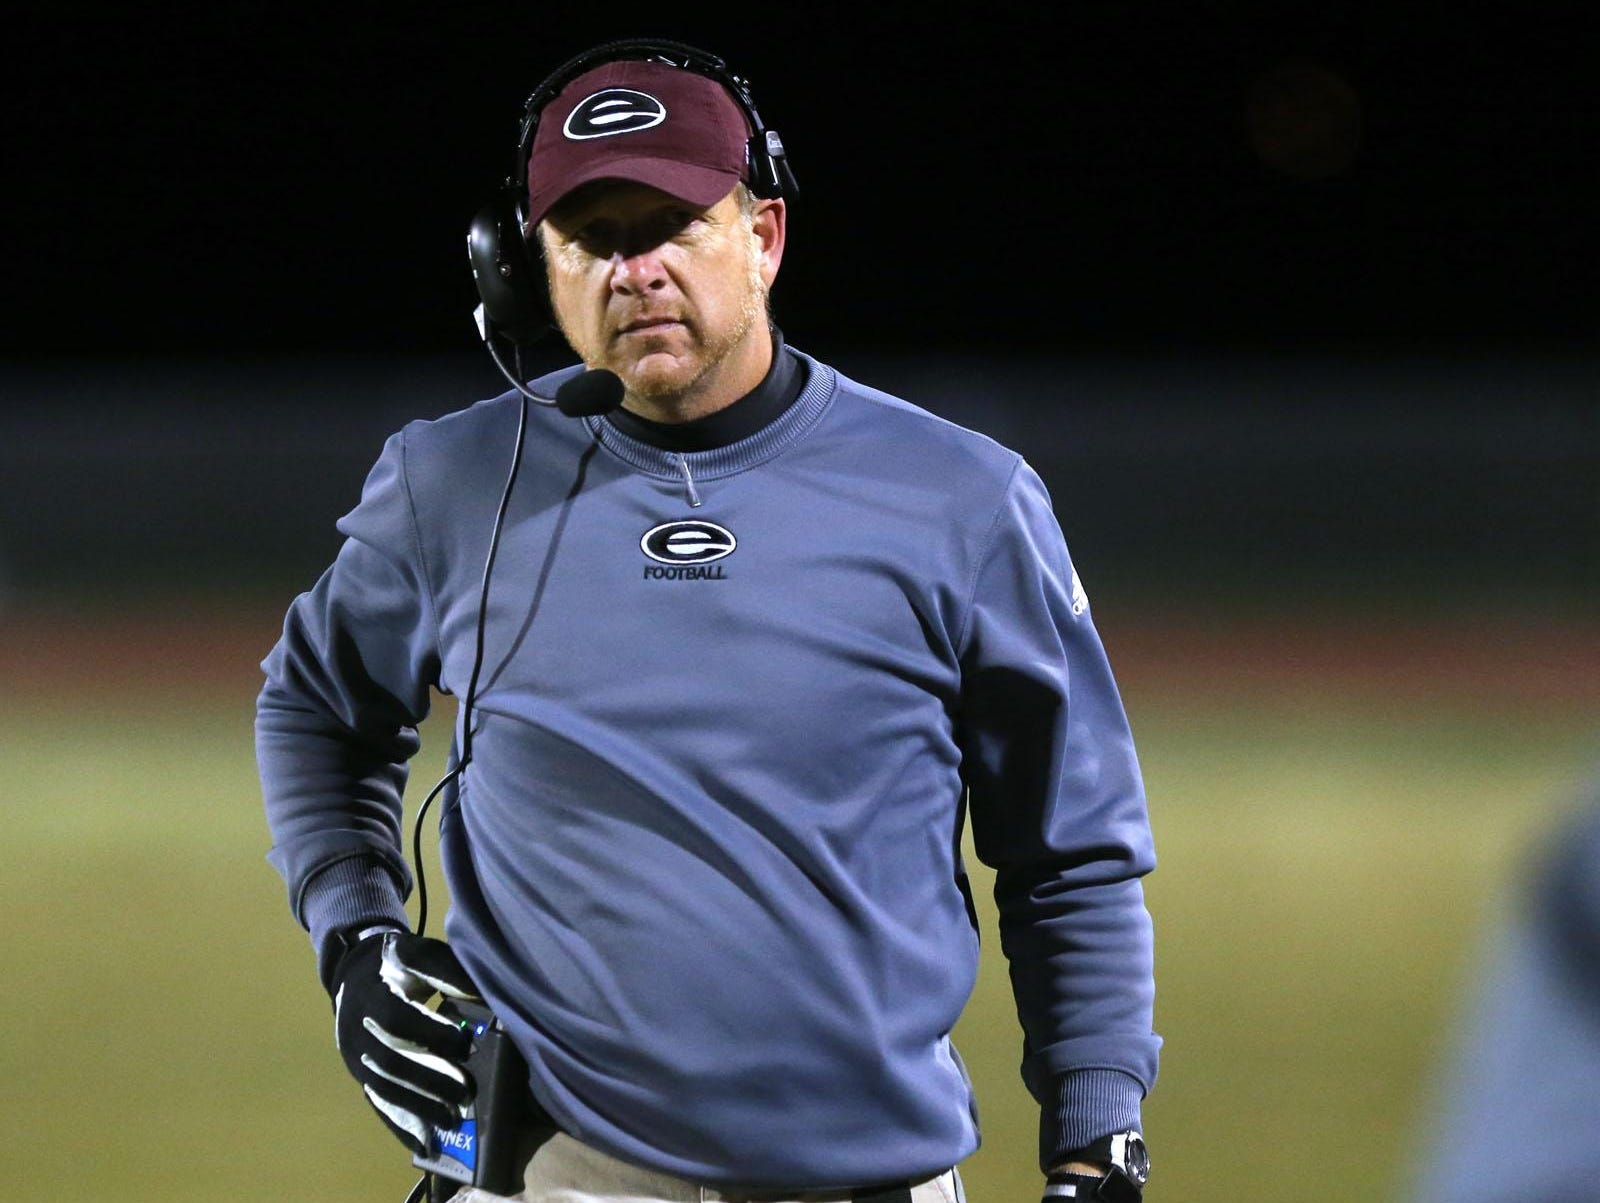 Eagleville football coach Steve Carson has led his team to six straight playoff appearances.